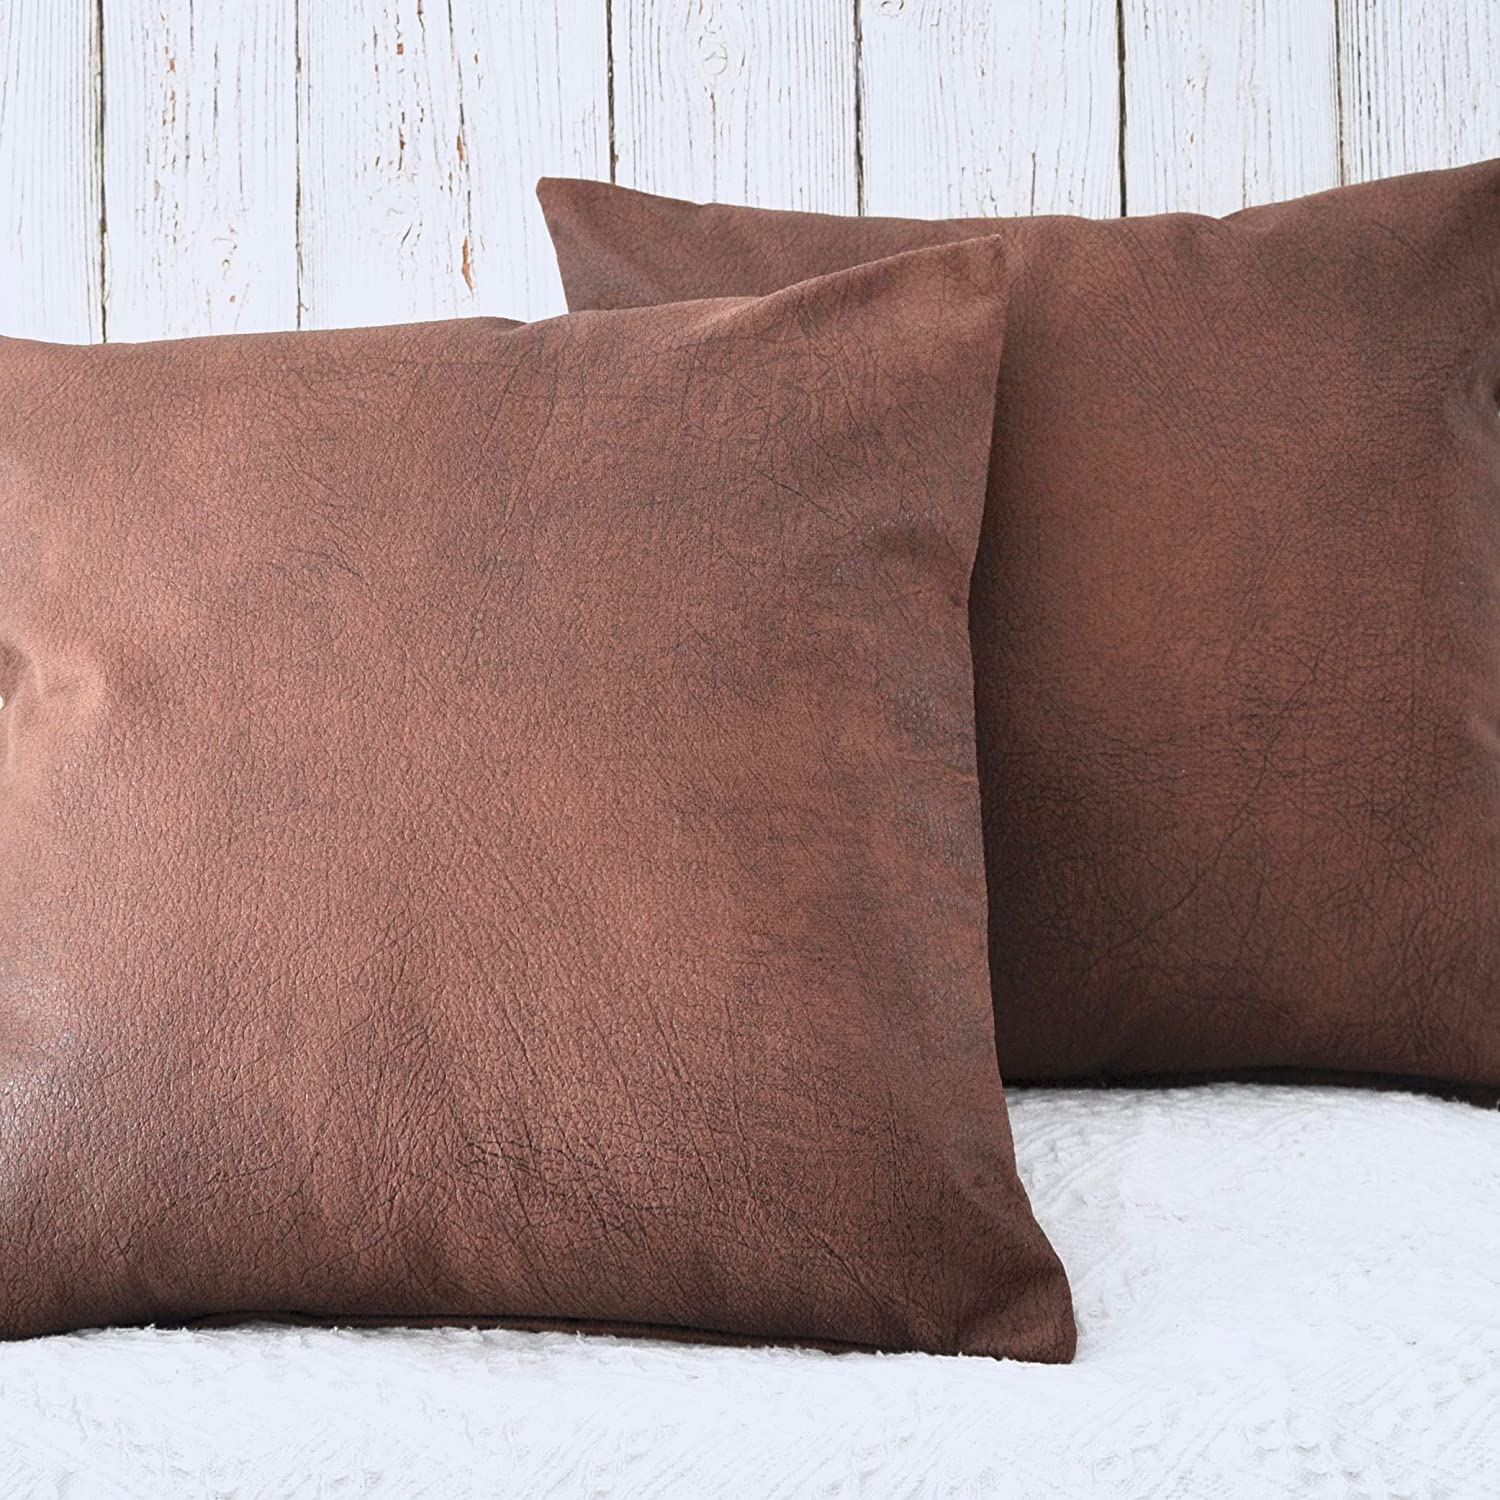 PANDICORN Brown Faux Leather Pillow Covers for Rustic Home Décor 18x18